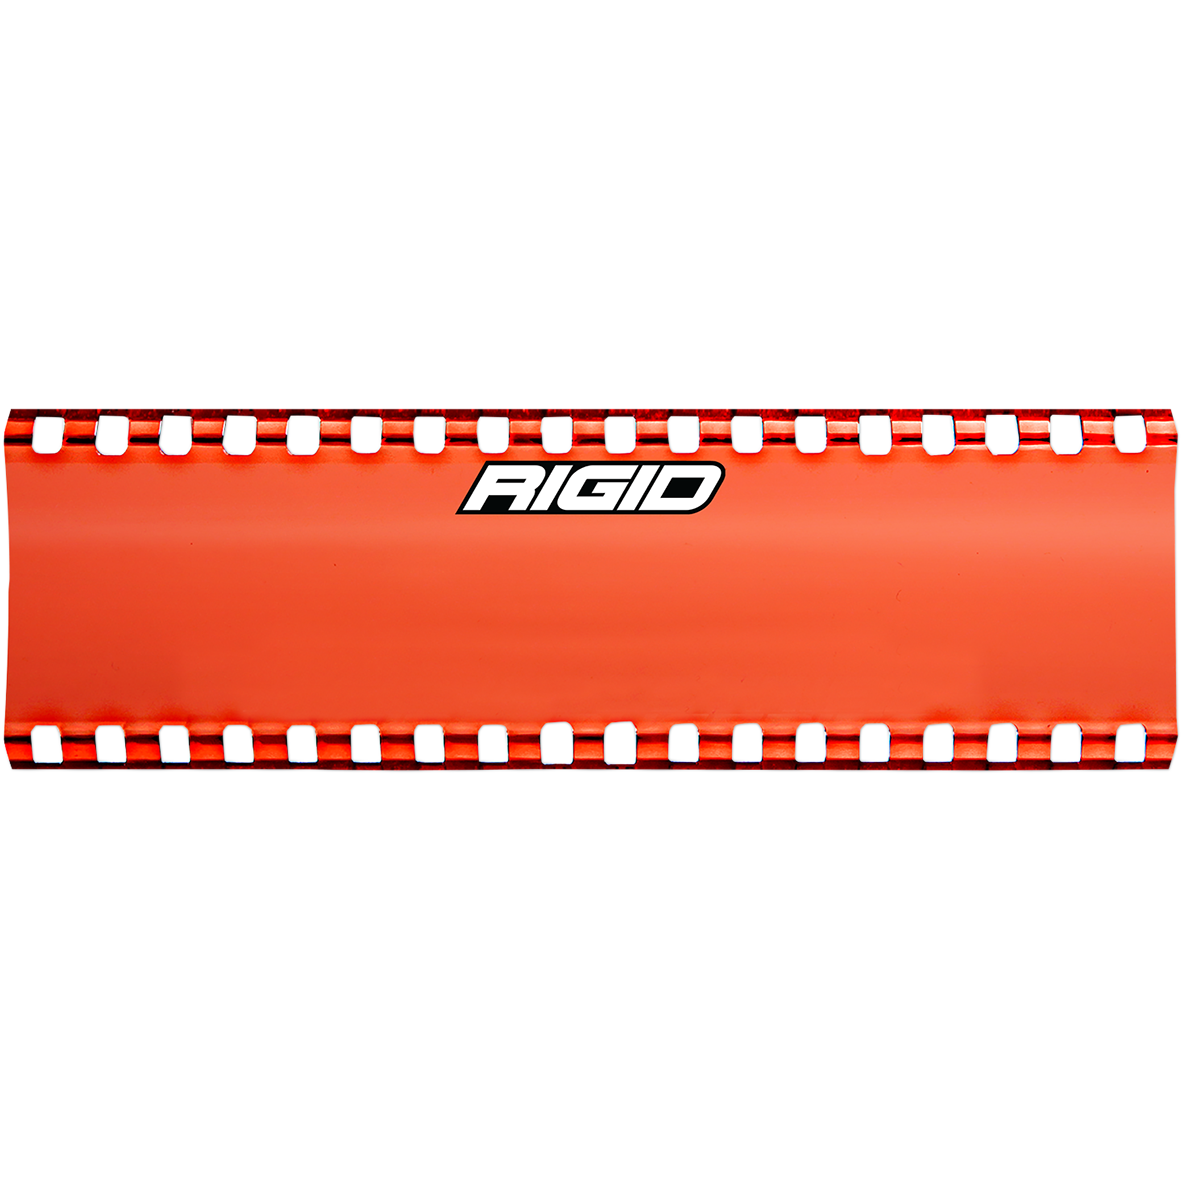 "RIGID INDUSTRIES SR-S Light Cover - 6"" - Red 105903"